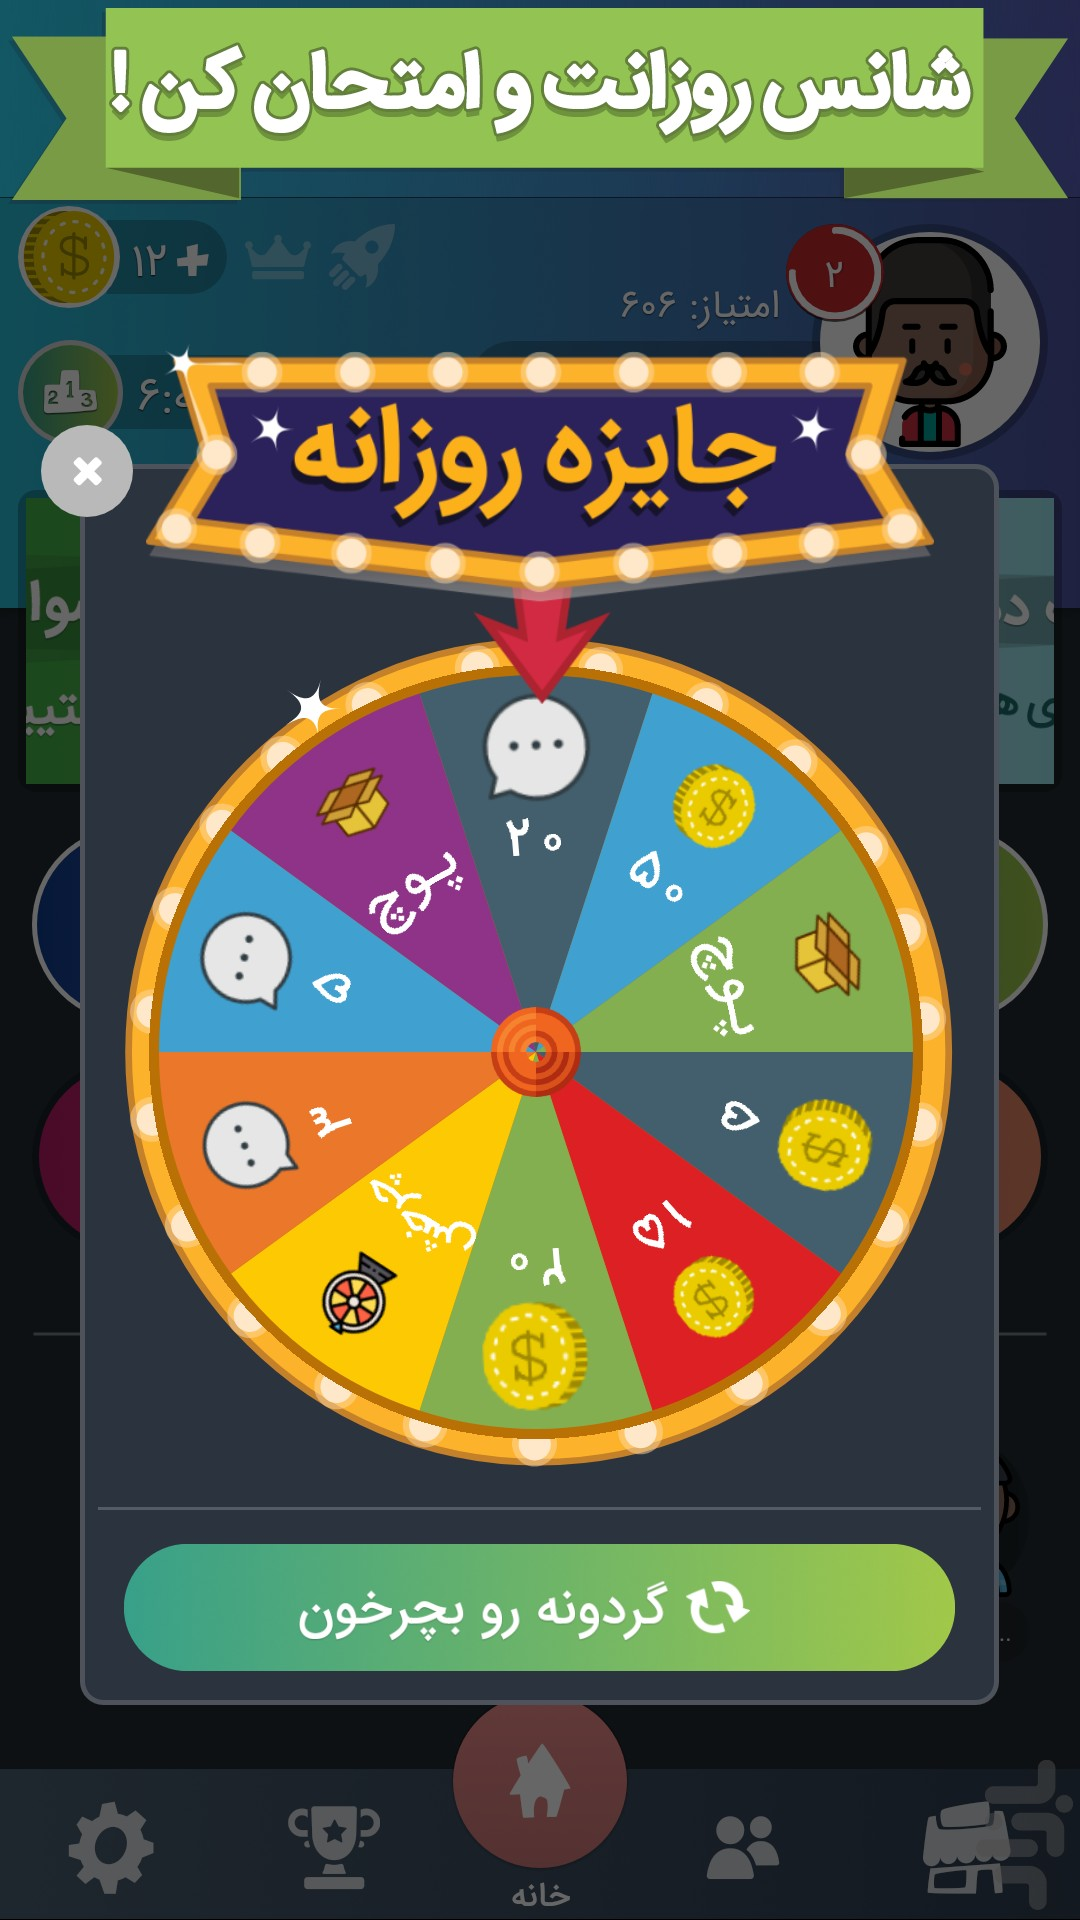 NinjaQuiz (Online Game) screenshot